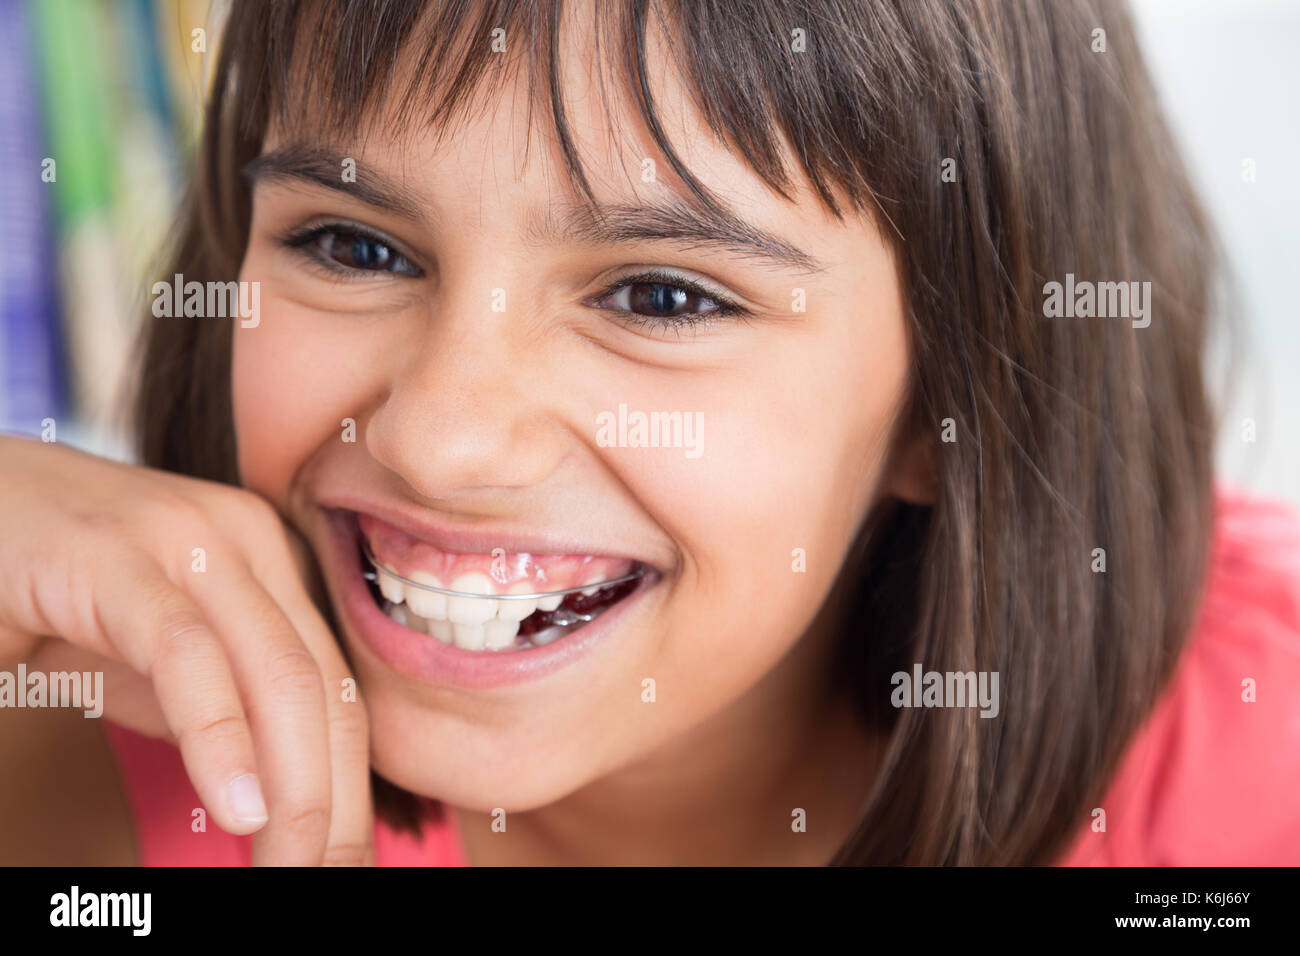 Portrait of a cute girl laughing wearing a removable orthodontic appliance - Stock Image